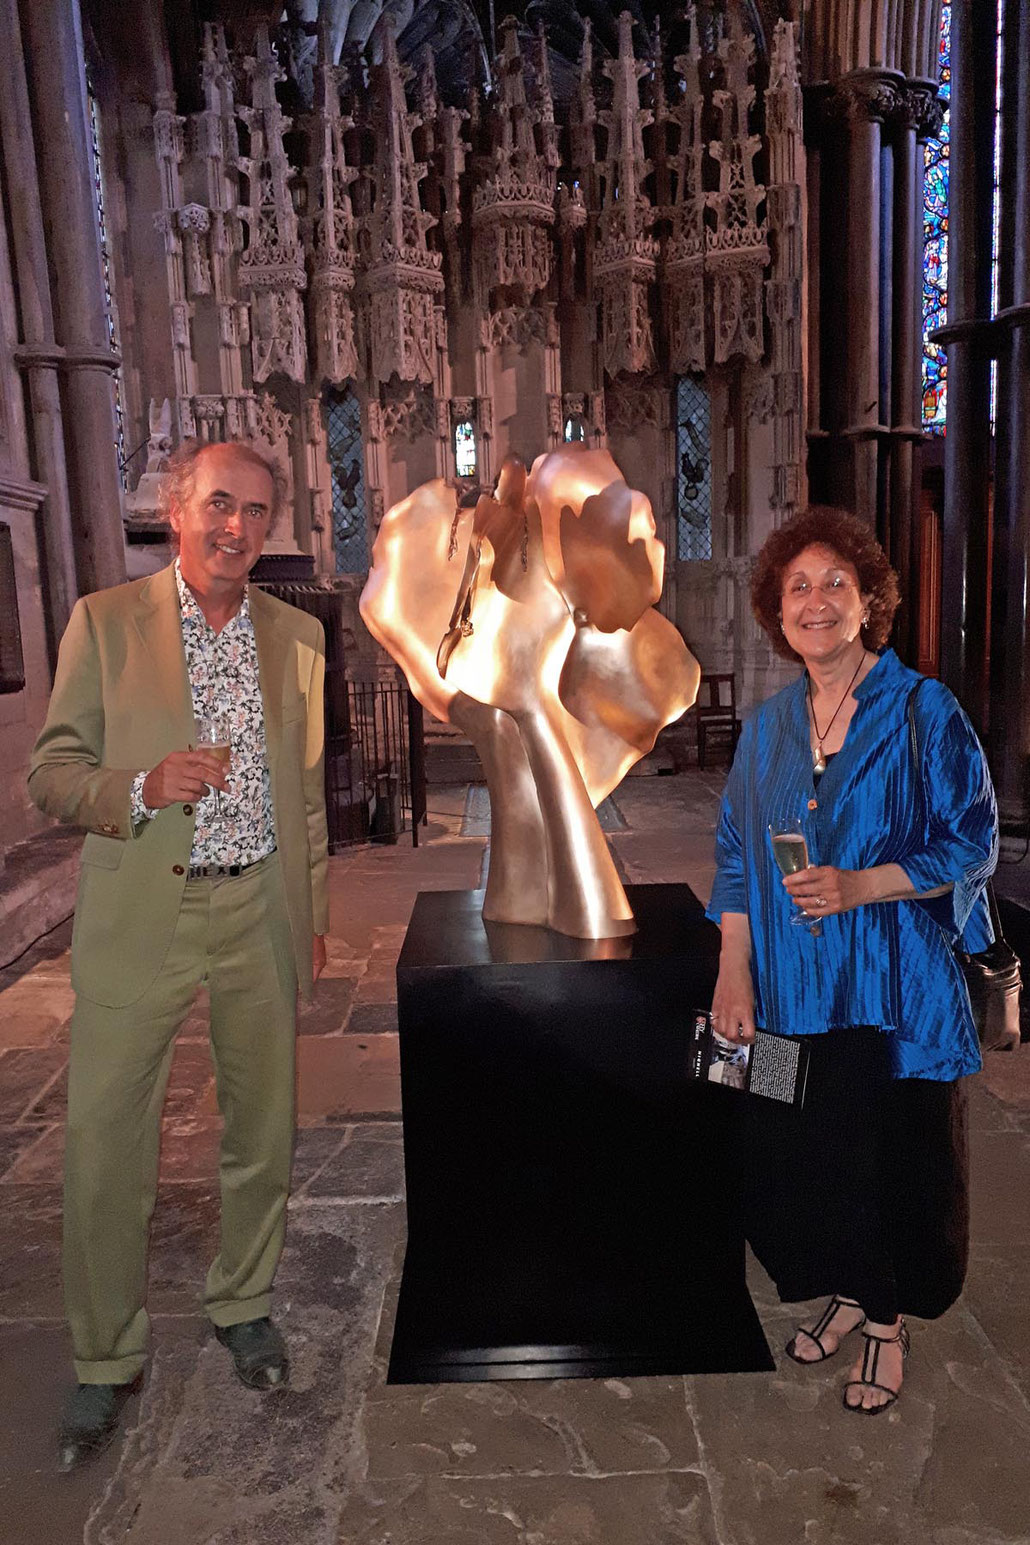 HEX and Shelly Robzen admire a sculpture by Helaine Blumenfeld OBE inside the cathedral of Ely. This is a MASTERPIECE. Hignell Gallery London.